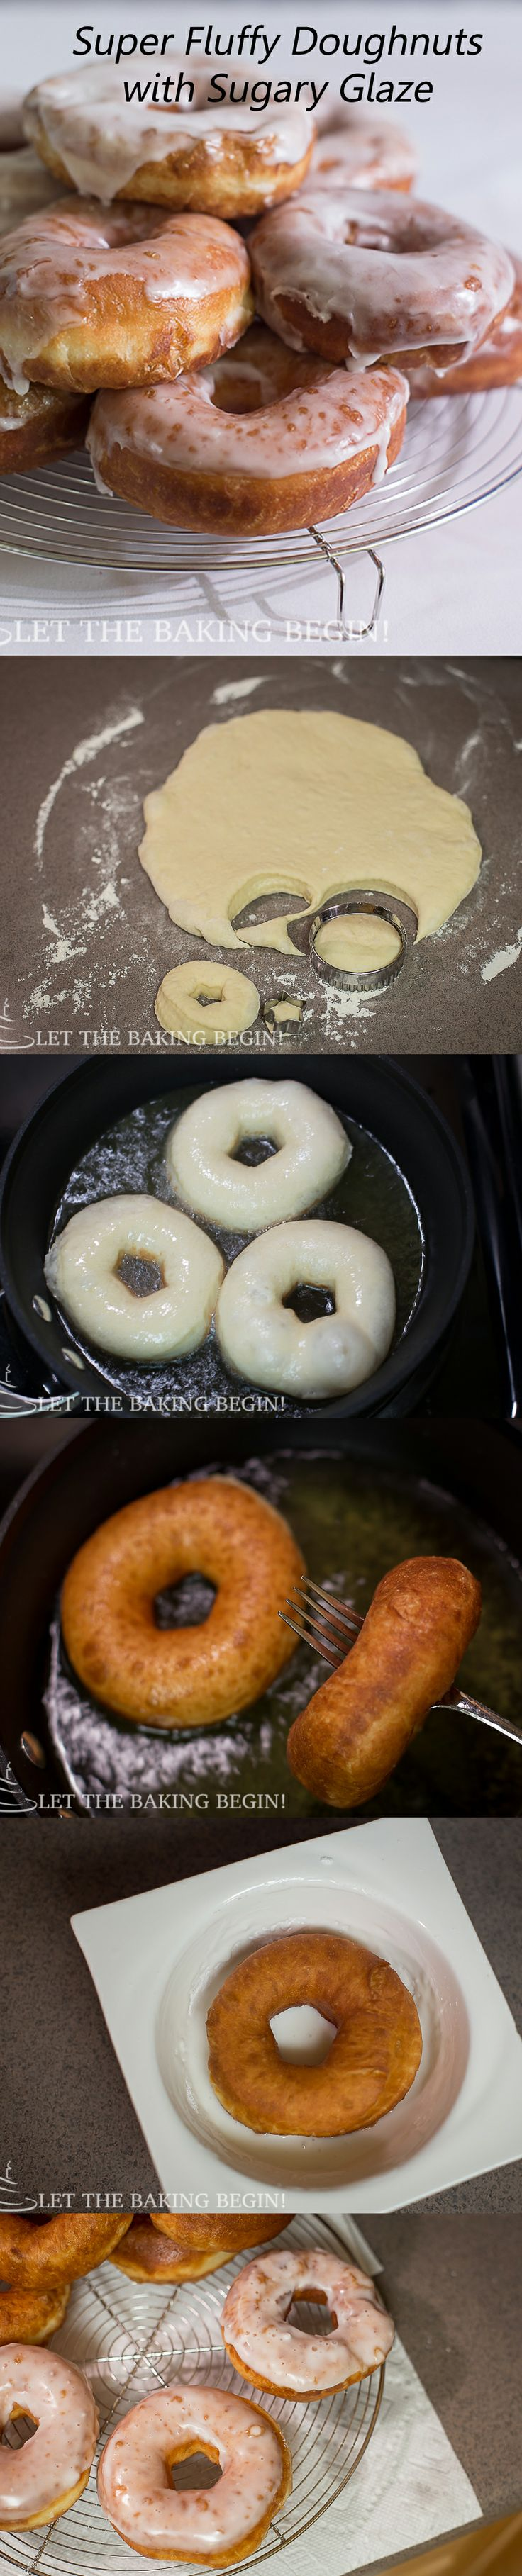 Super soft, adorned with crispy sugar glaze these doughnuts were a huge hit in our family!